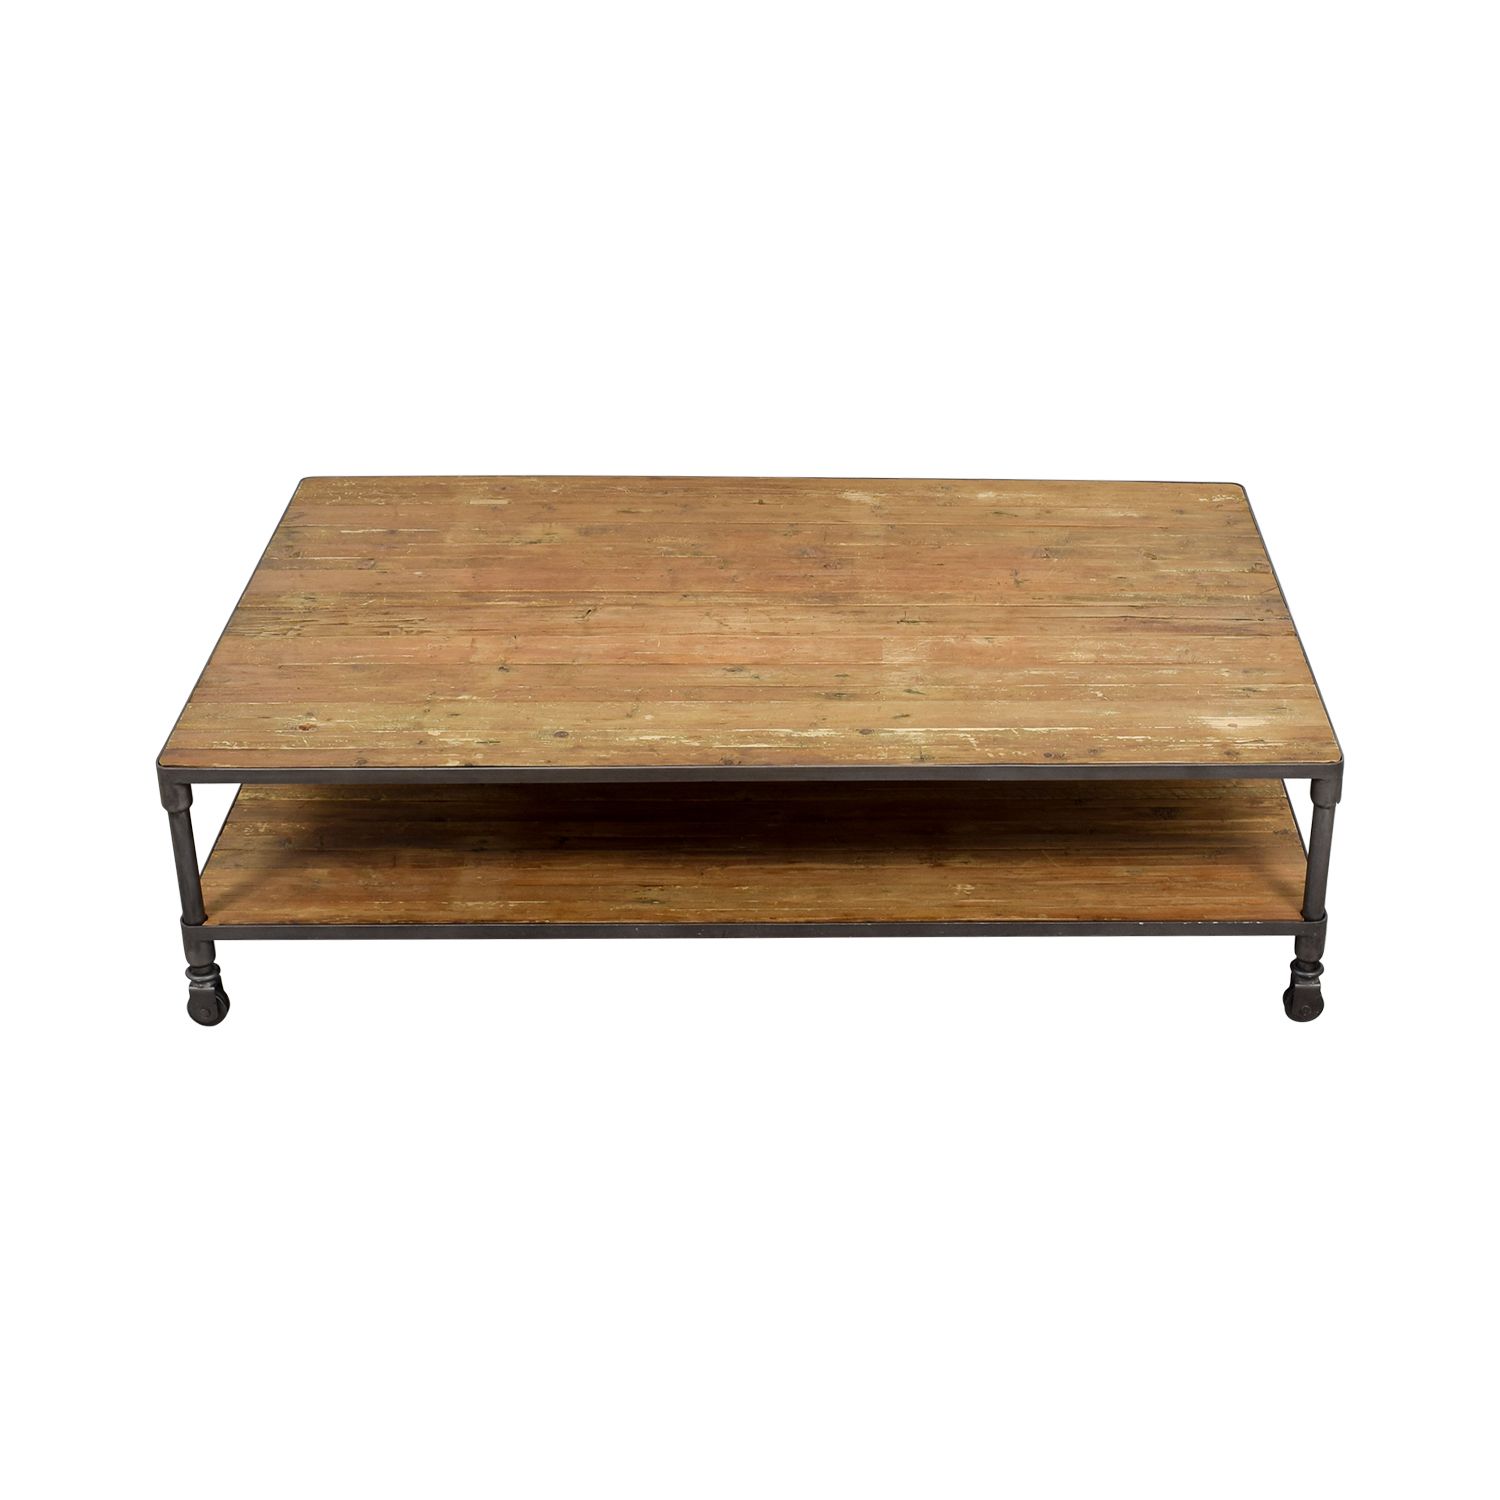 buy ABC Carpet & Home ABC Carpet & Home Reclaimed Wood Coffee Table online